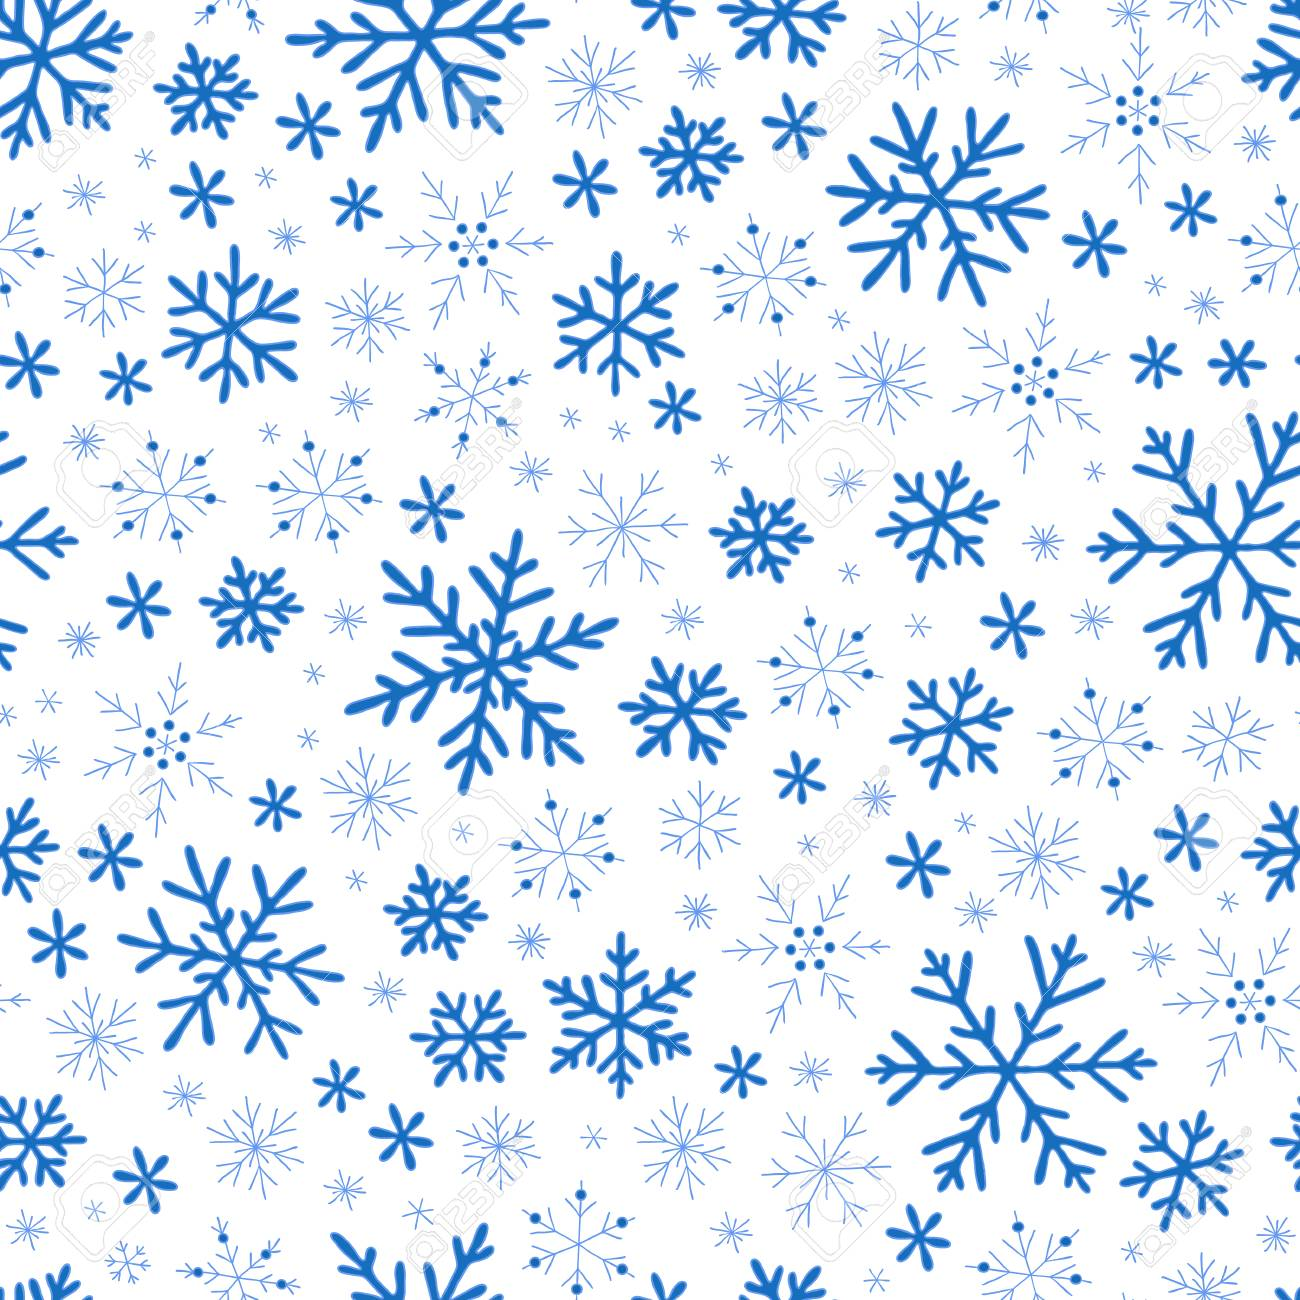 Cute Simple Vector Snowflakes For Postcard And Poster Graphic Design Textile Wrapping Paper Hand Drawn Style Christmas Winter Backgrounds